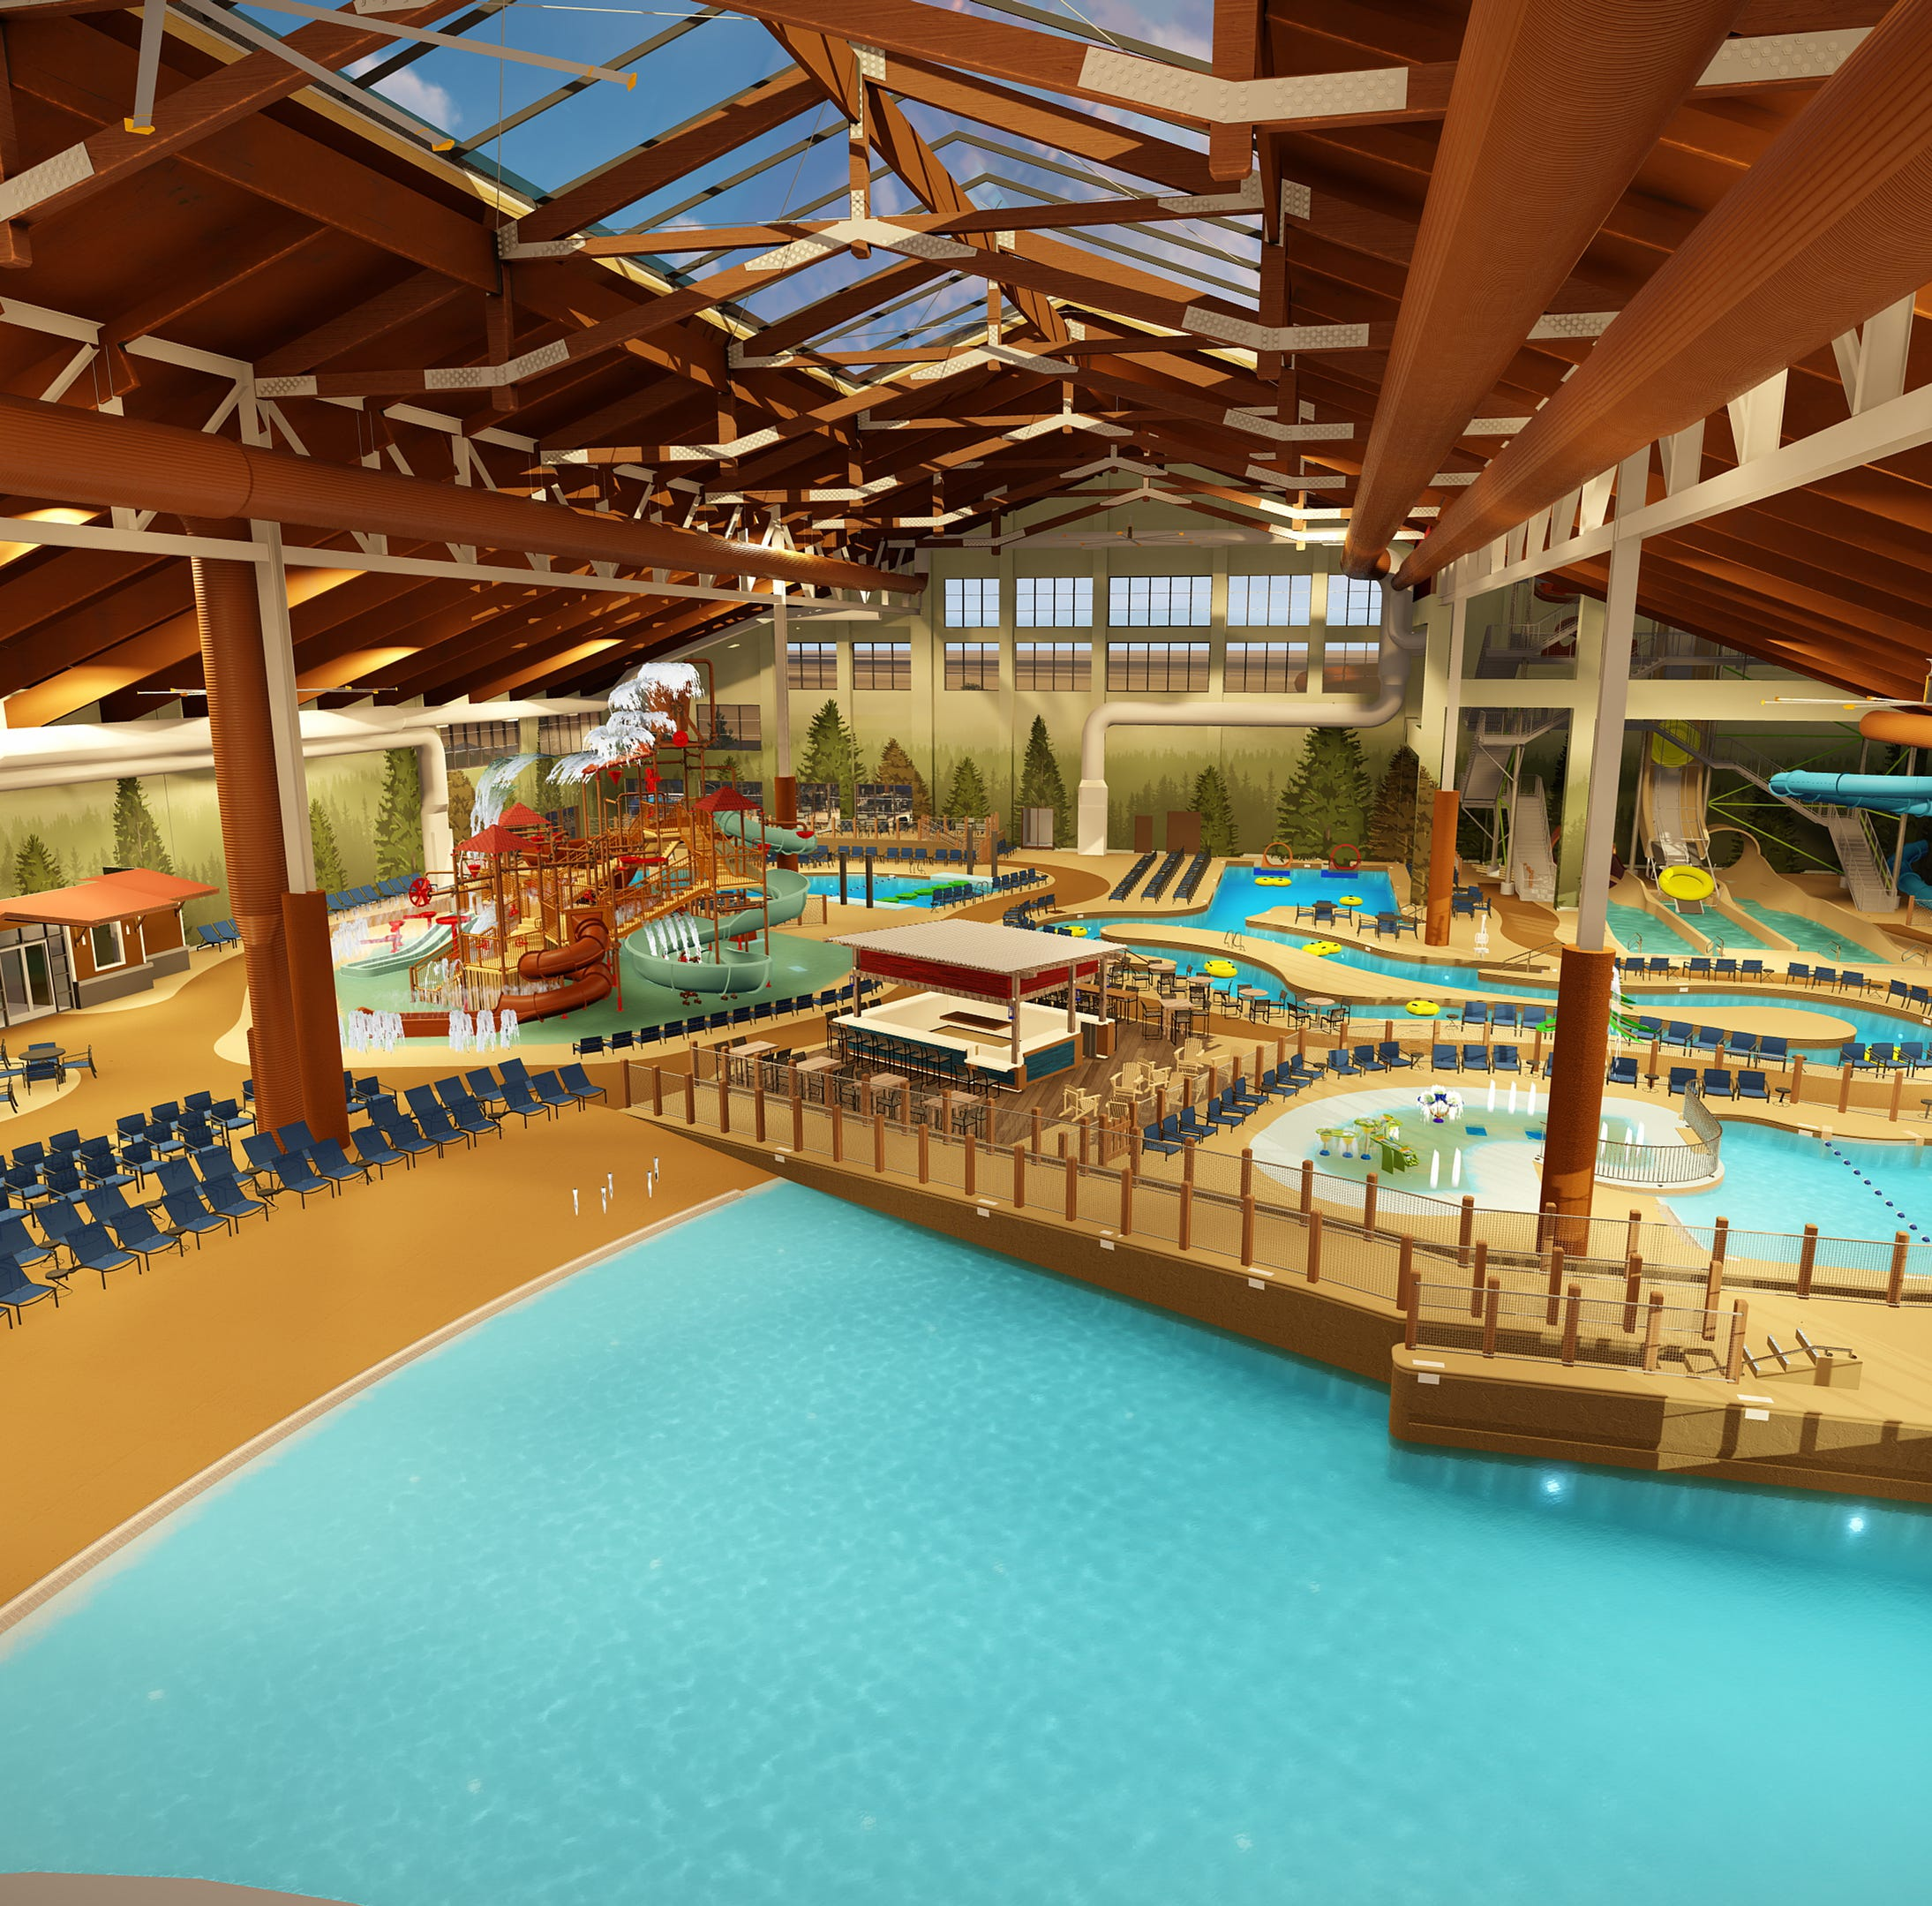 Great Wolf Lodge Arizona: What you'll find in the resort's new water park